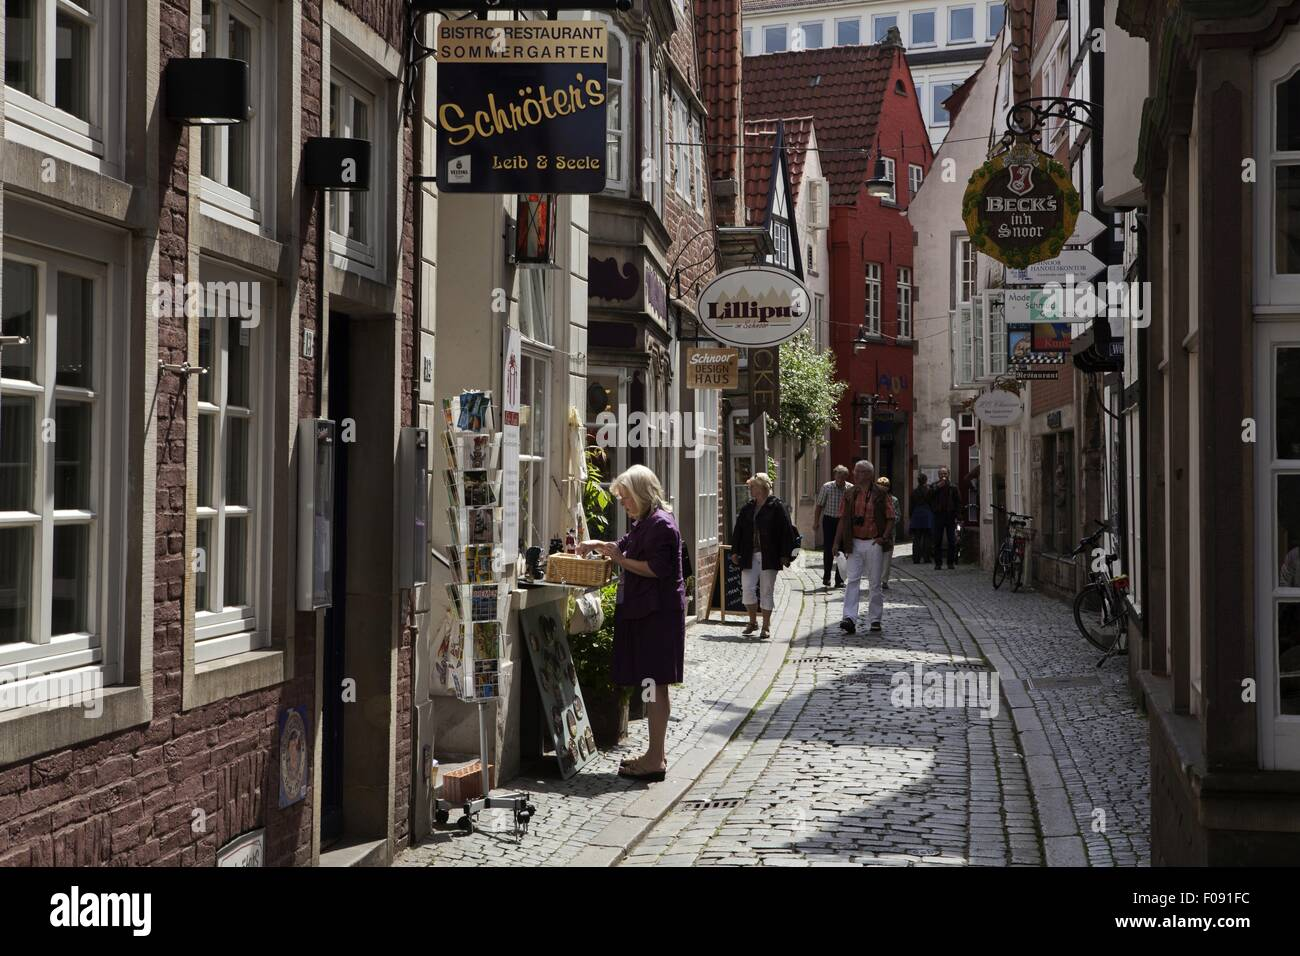 view of people on schnoor street shop in viertel bremen germany stock photo 86250624 alamy. Black Bedroom Furniture Sets. Home Design Ideas